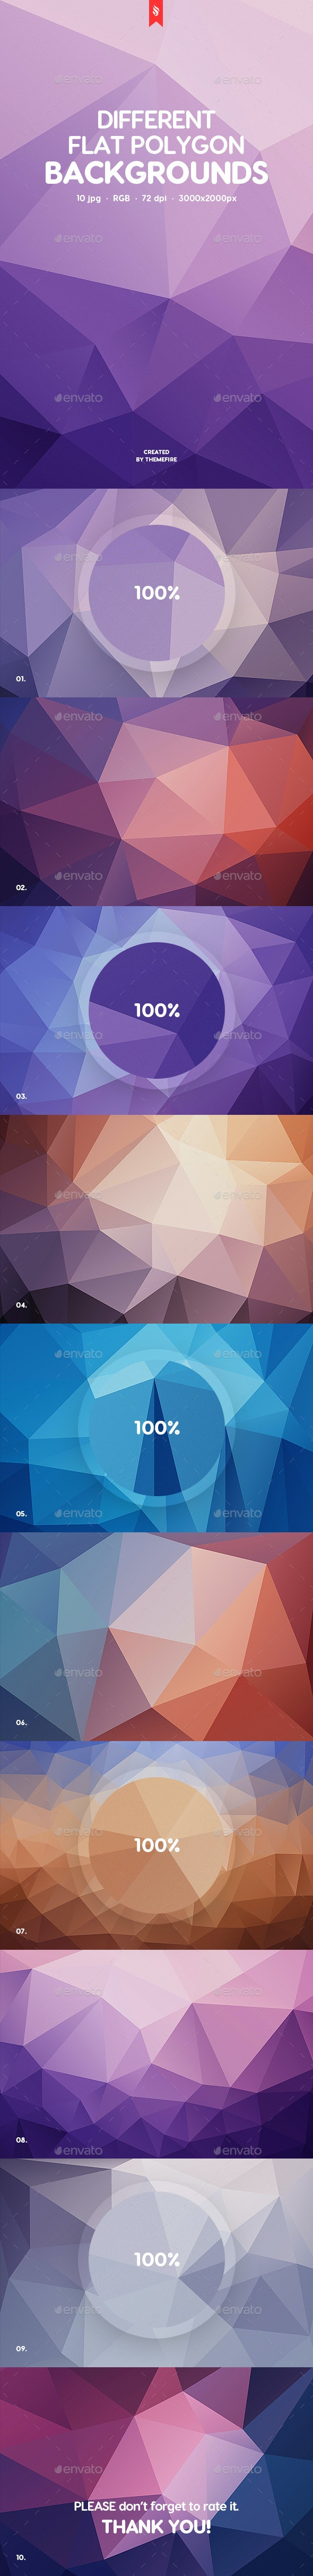 10 Different Flat Poly Backgrounds - Abstract Backgrounds